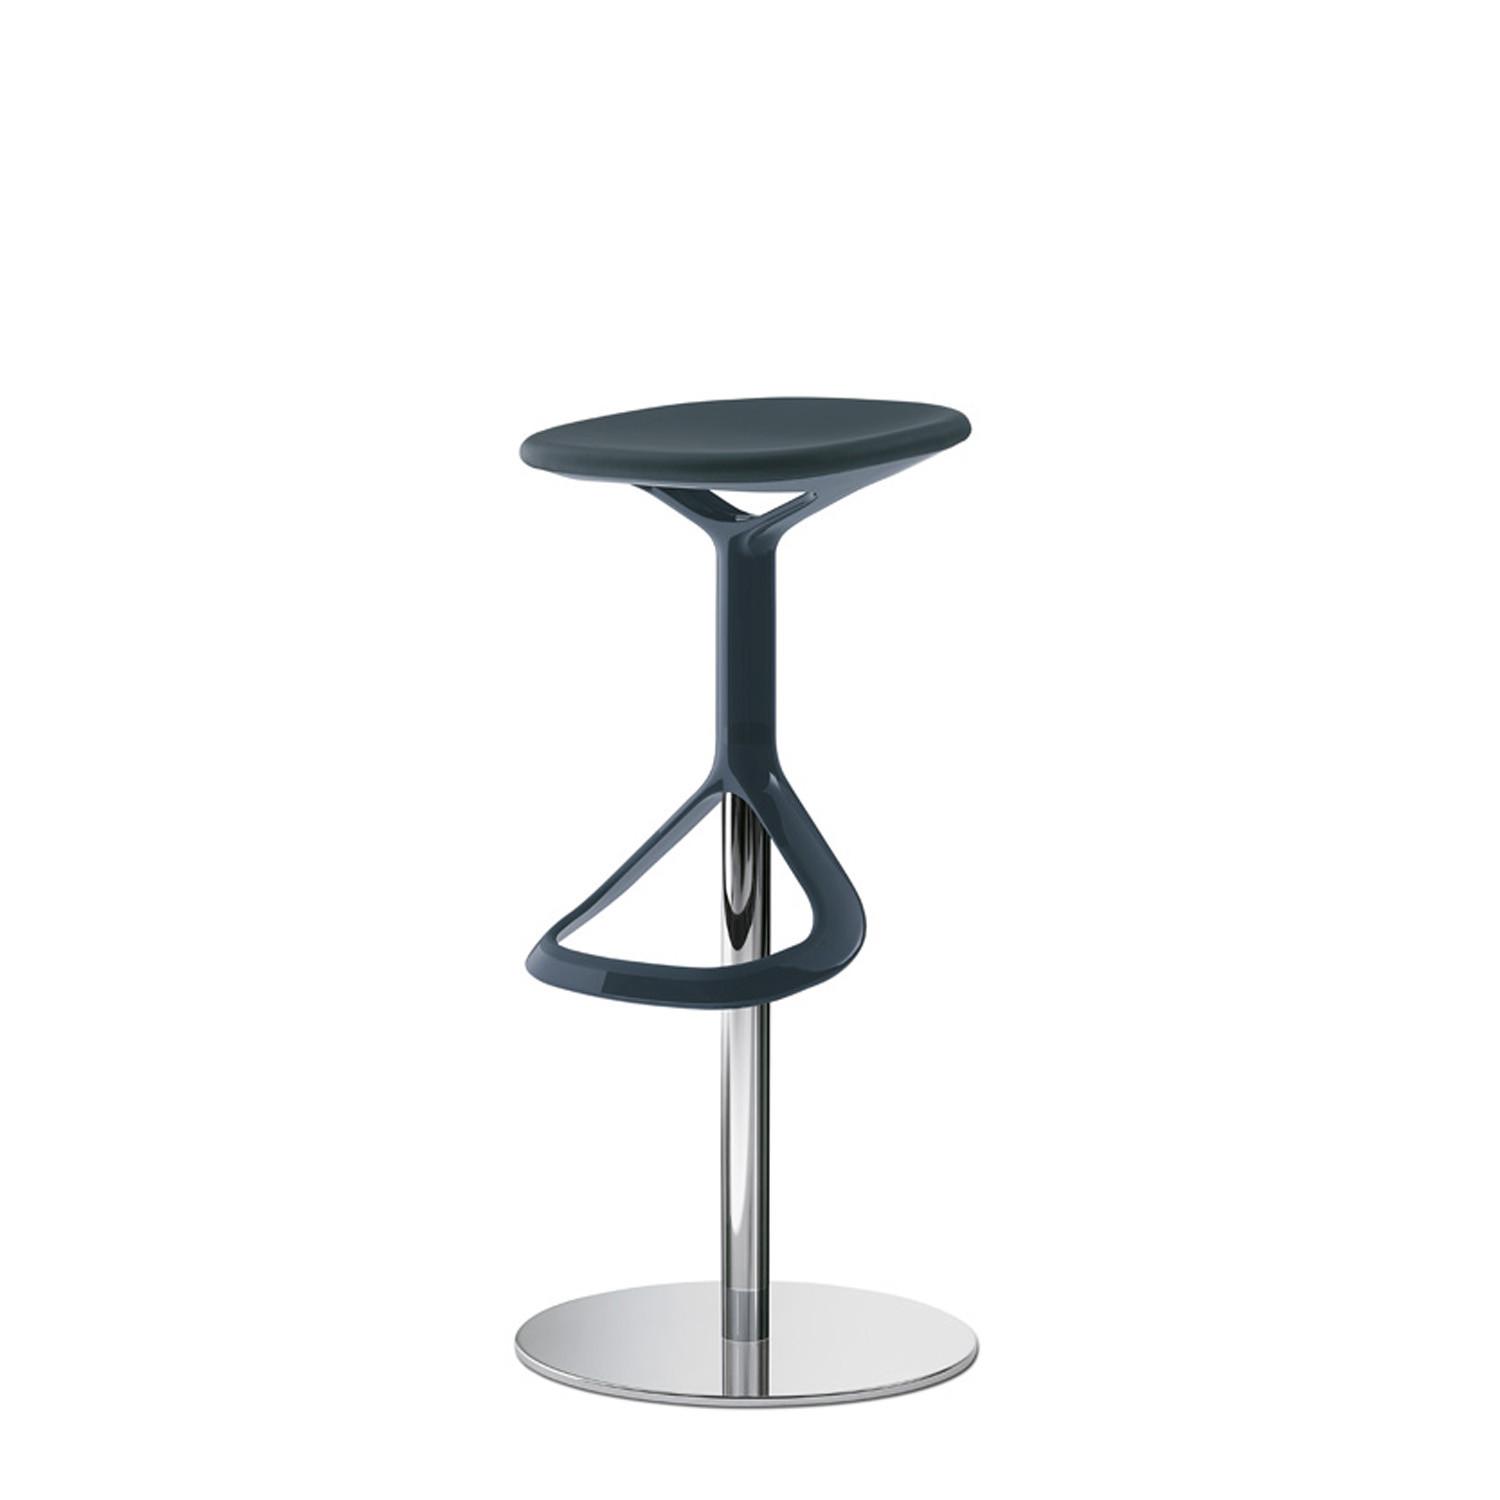 Lox Bar Stool Contemporary Barstools Apres Furniture : lox bar stools 03 from www.apresfurniture.co.uk size 1500 x 1500 jpeg 65kB